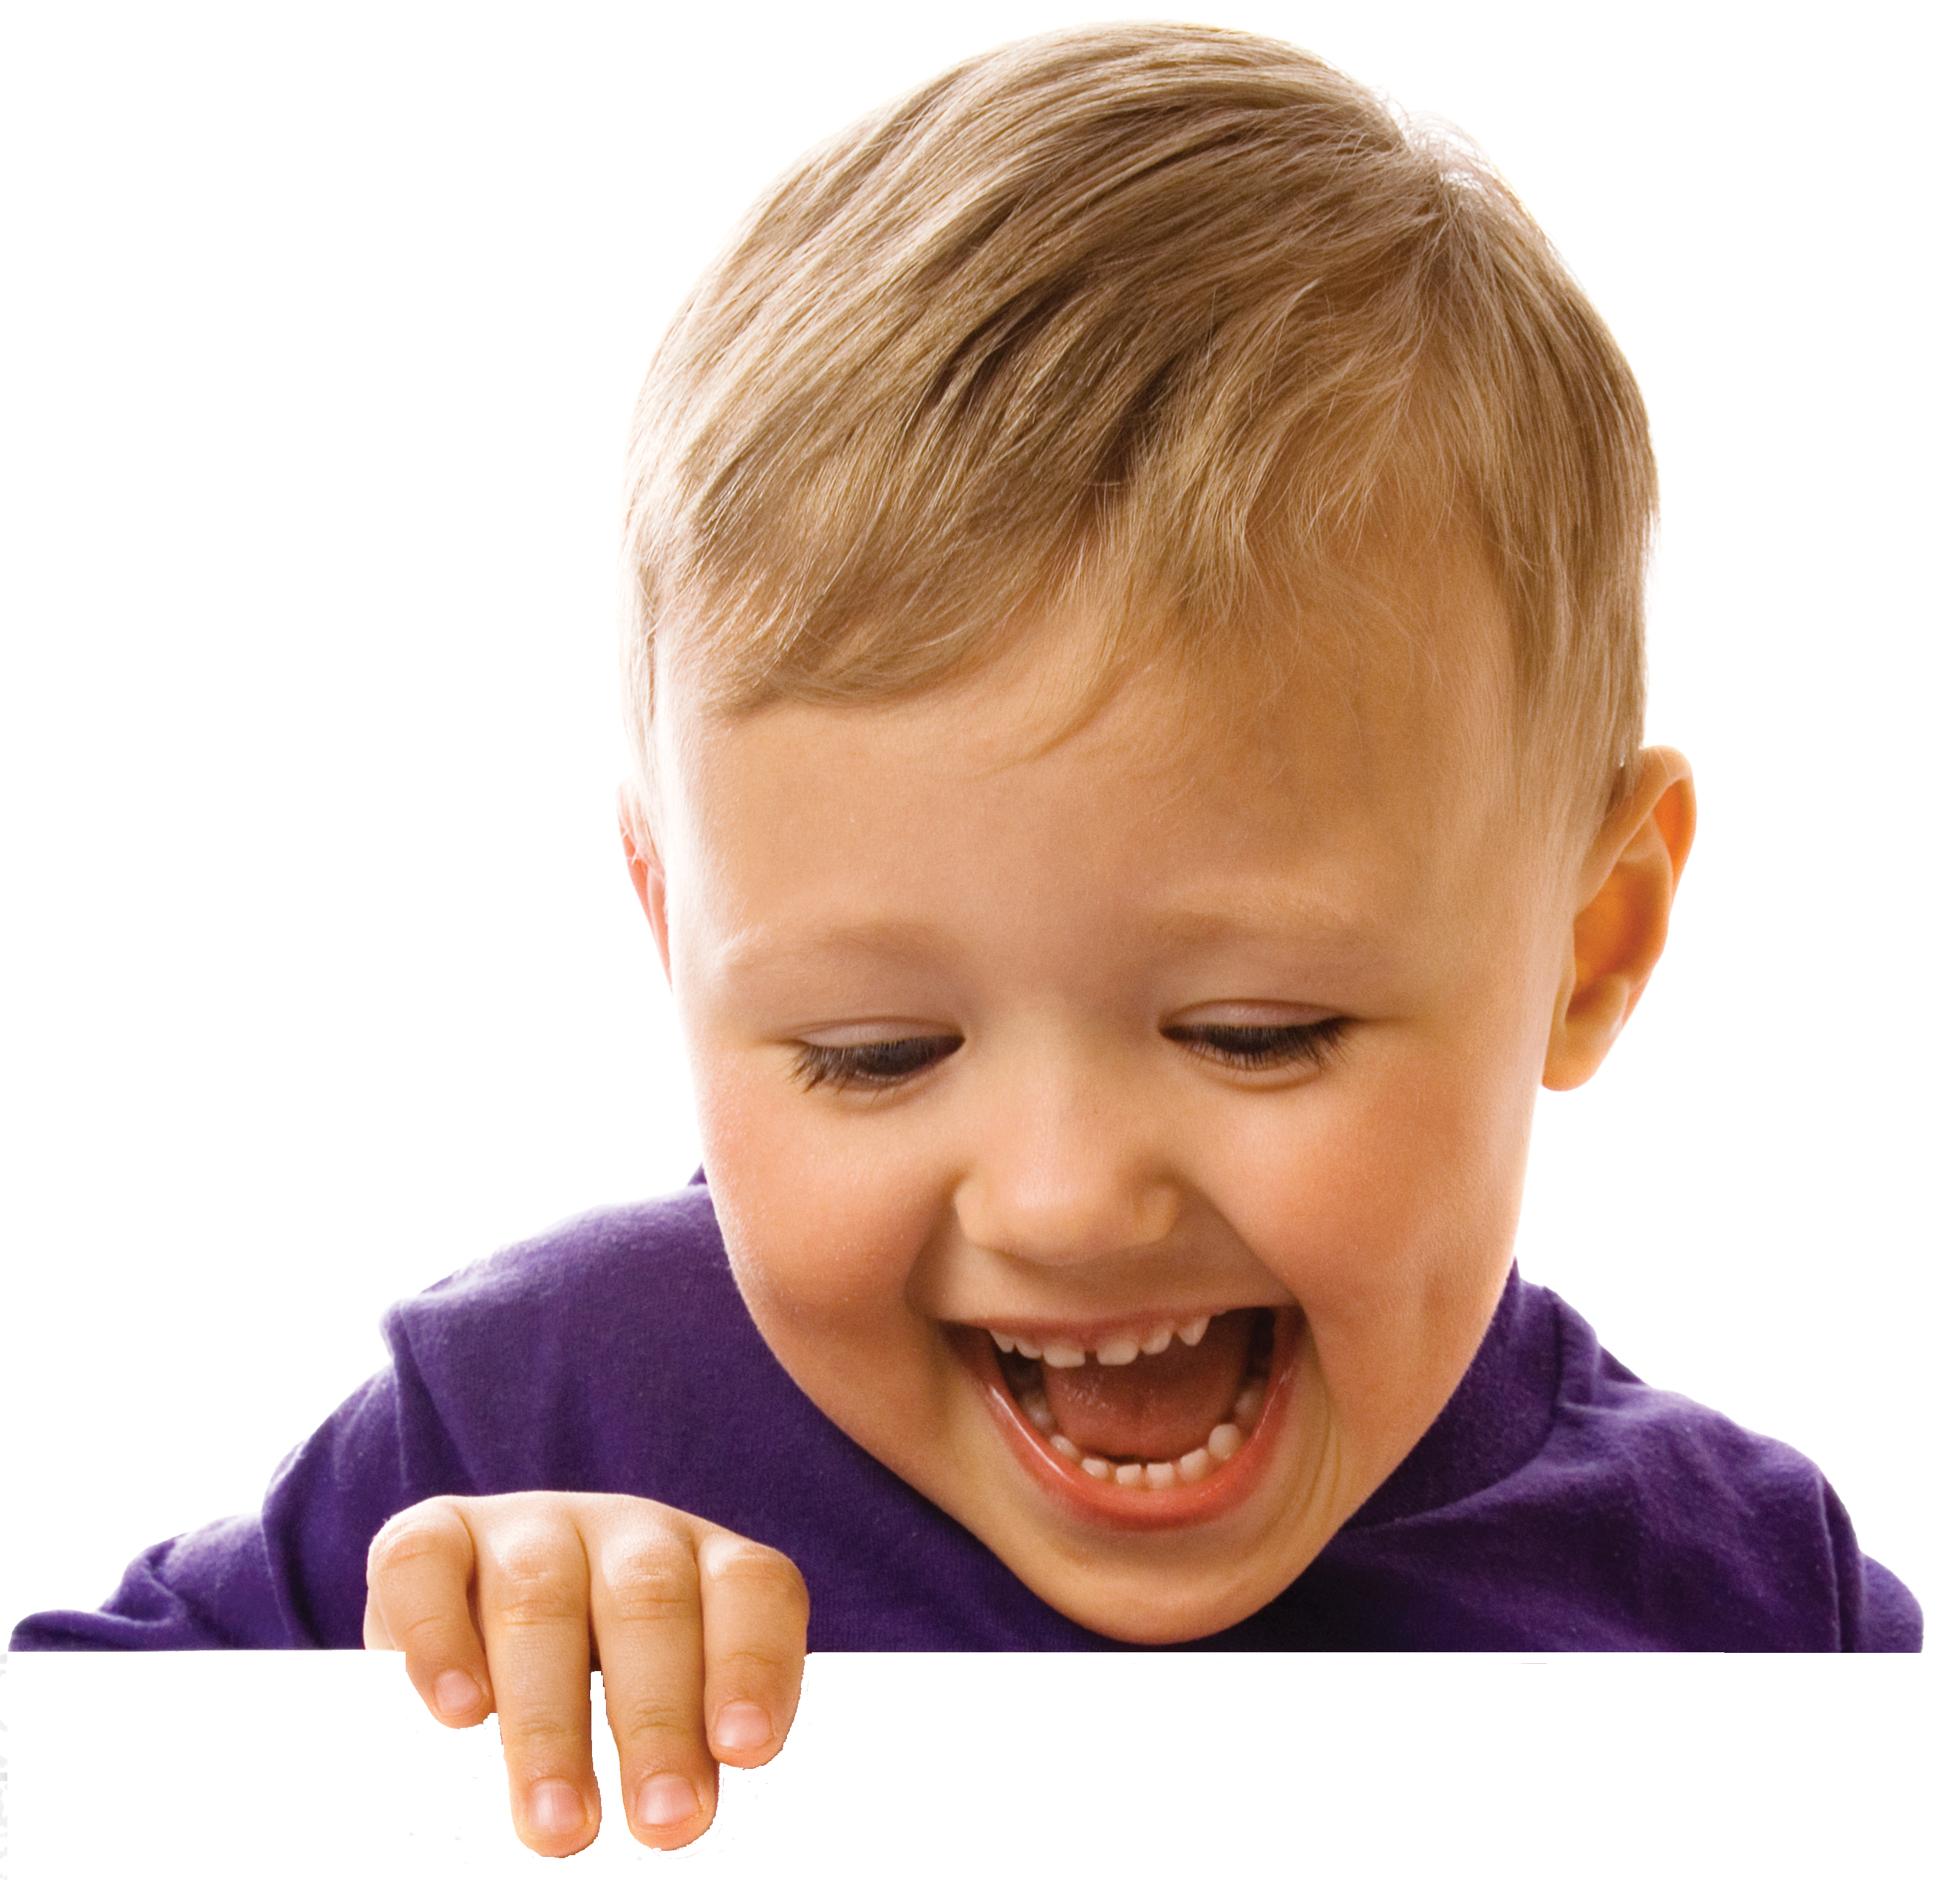 Child PNG Image.